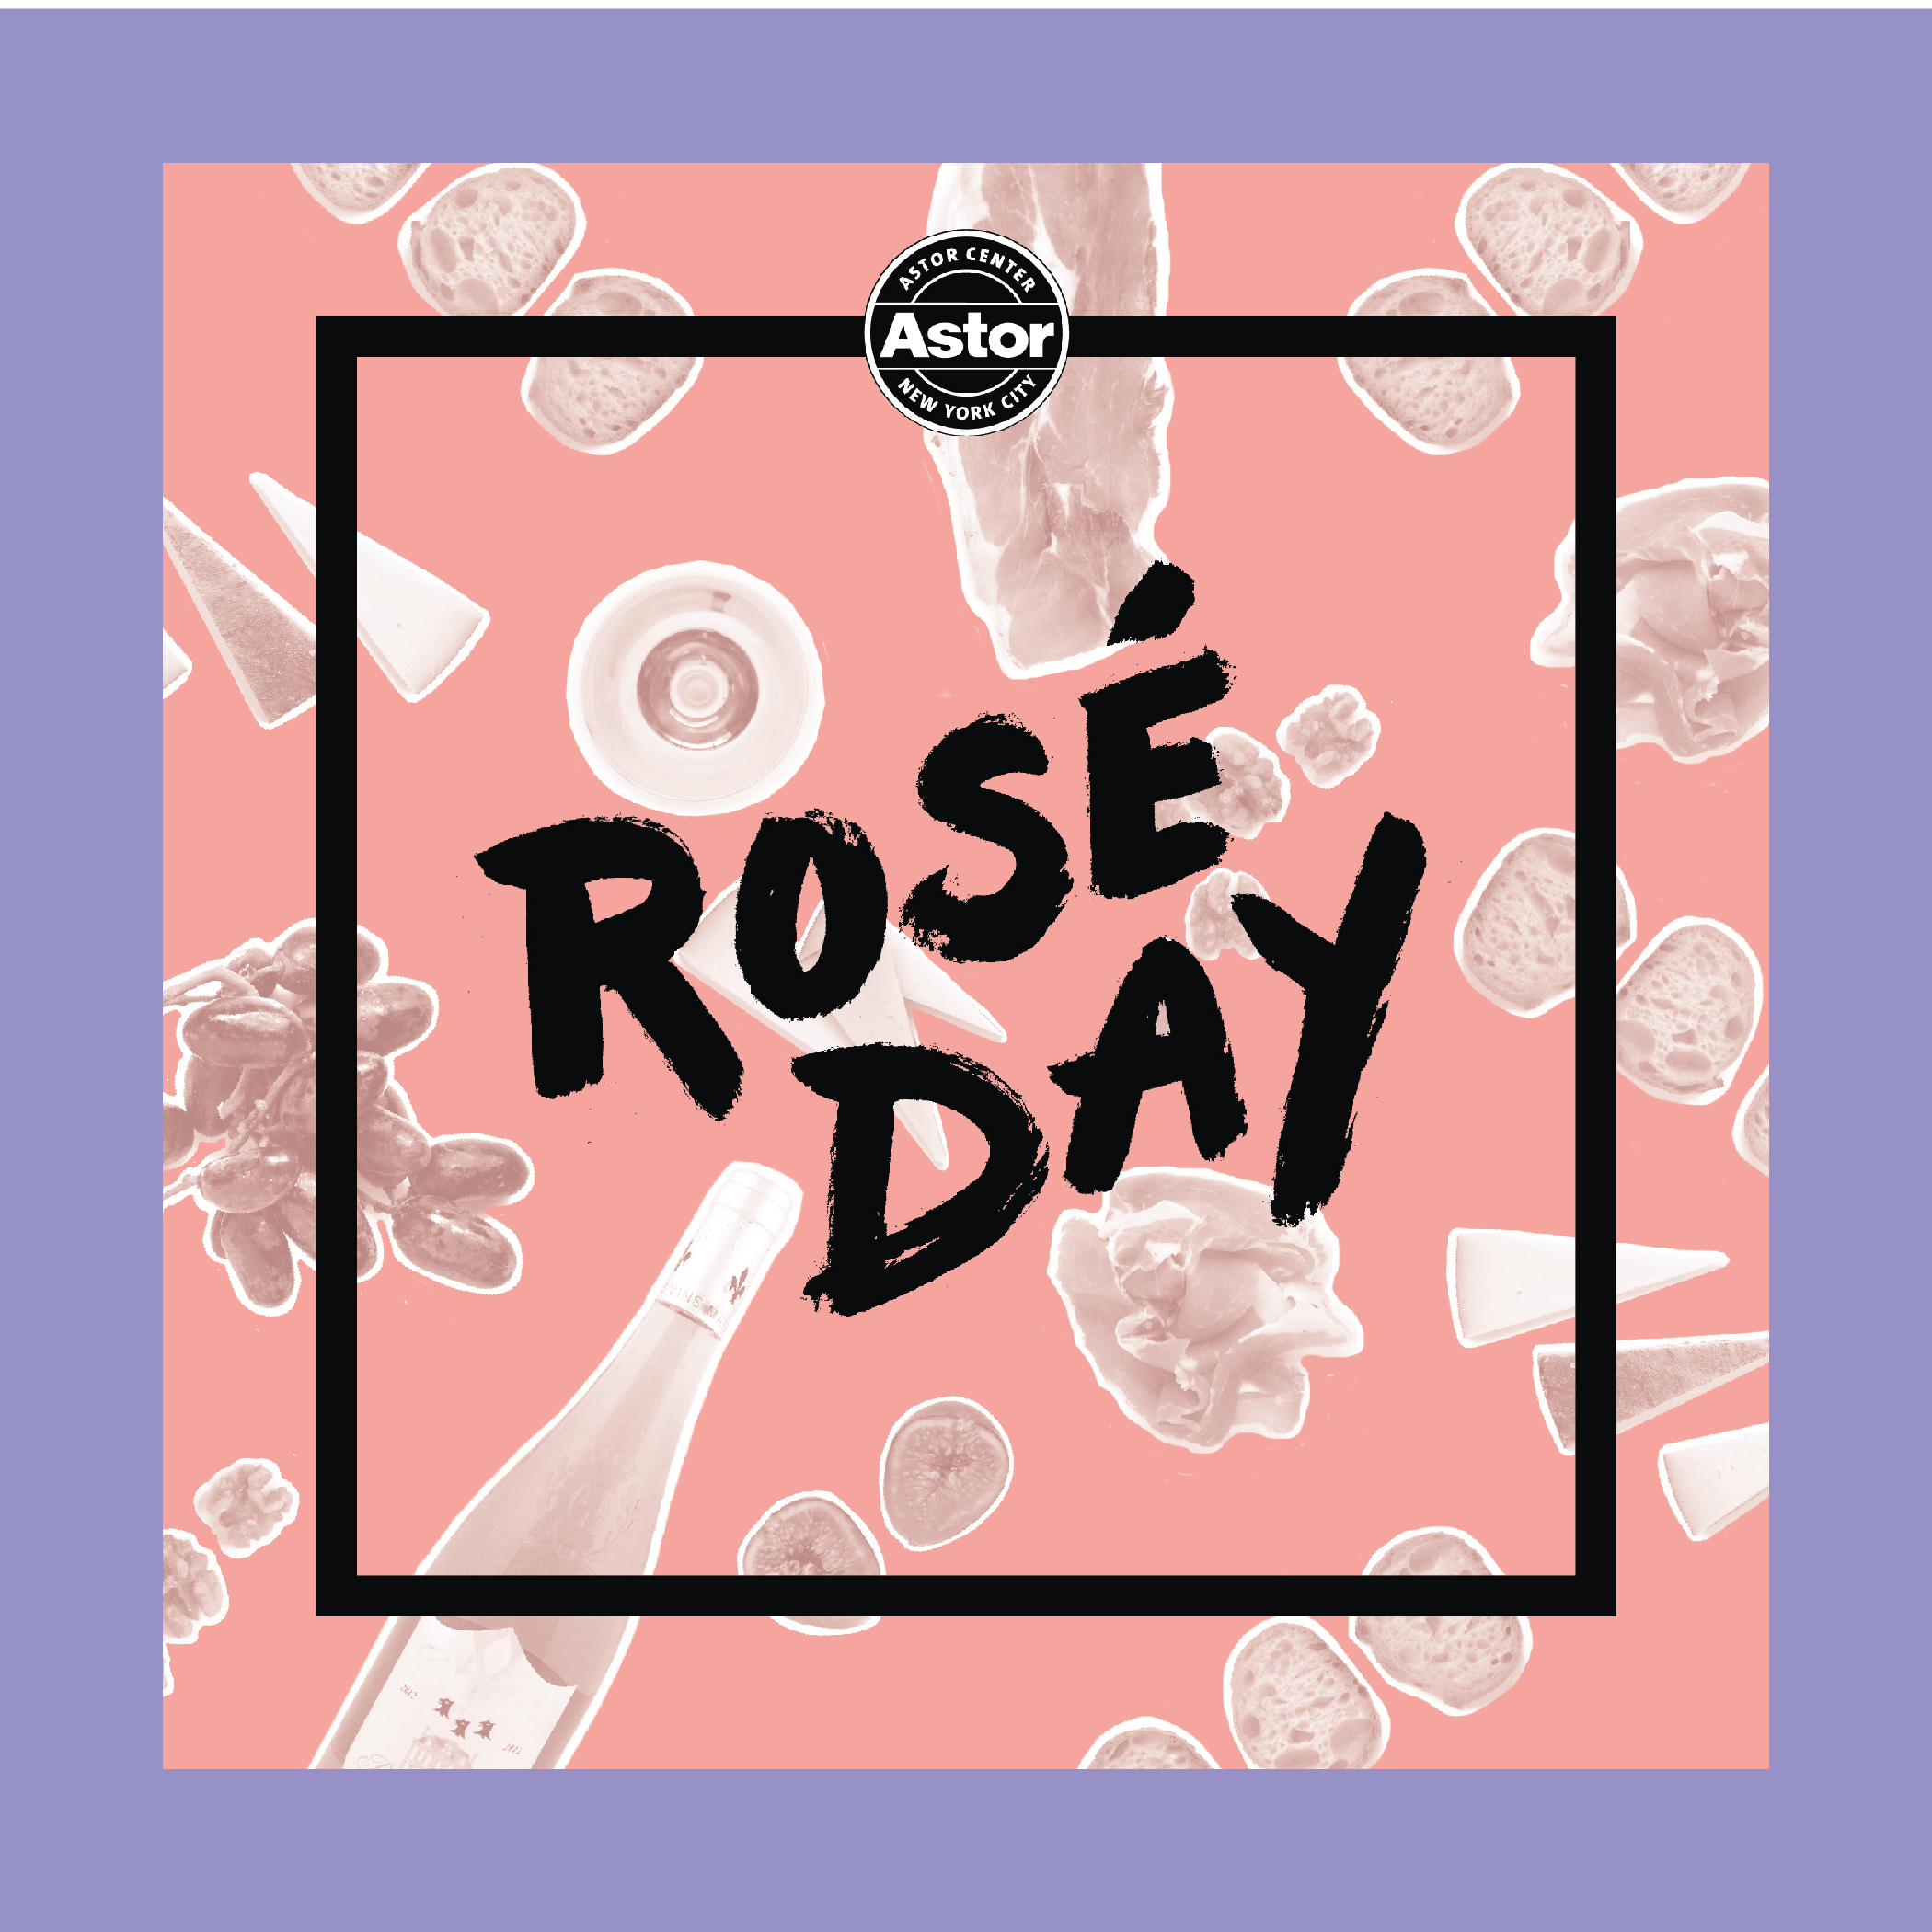 2015-05-09-Rose-Day-Instagram-05- purps-05.jpg